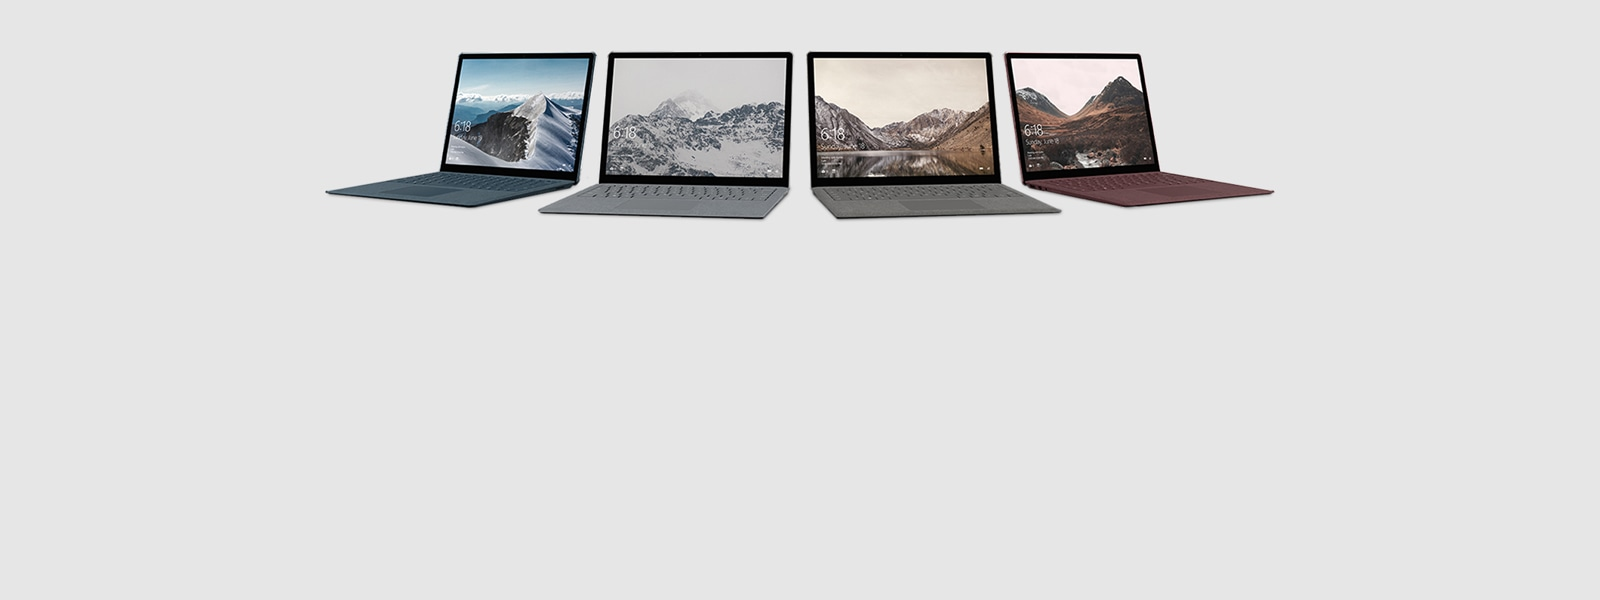 Surface Laptop (Kobaltblauw, platina, witgoud, bordeauxrood)